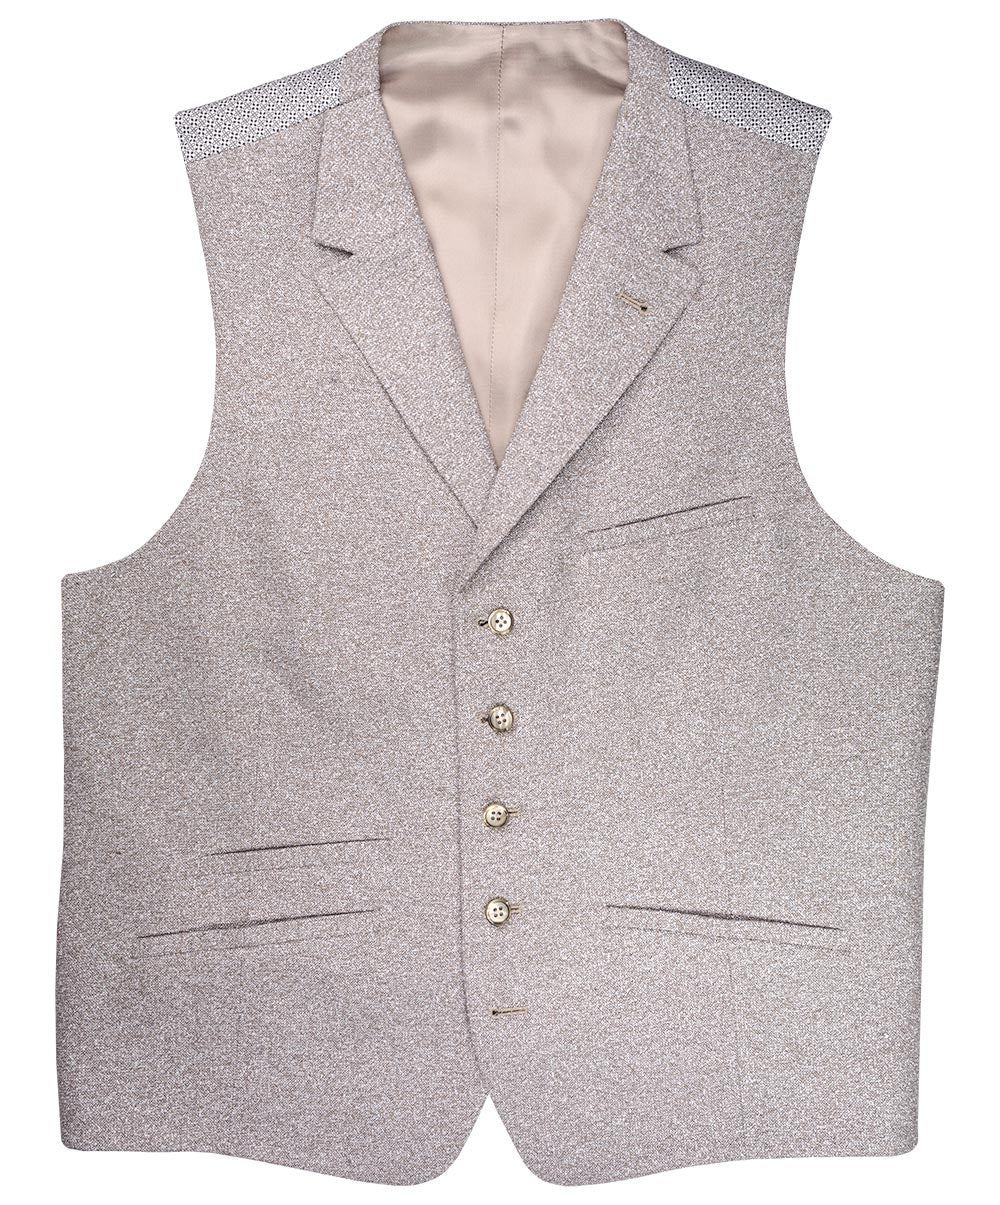 Taupe/Sand Boucle Vest